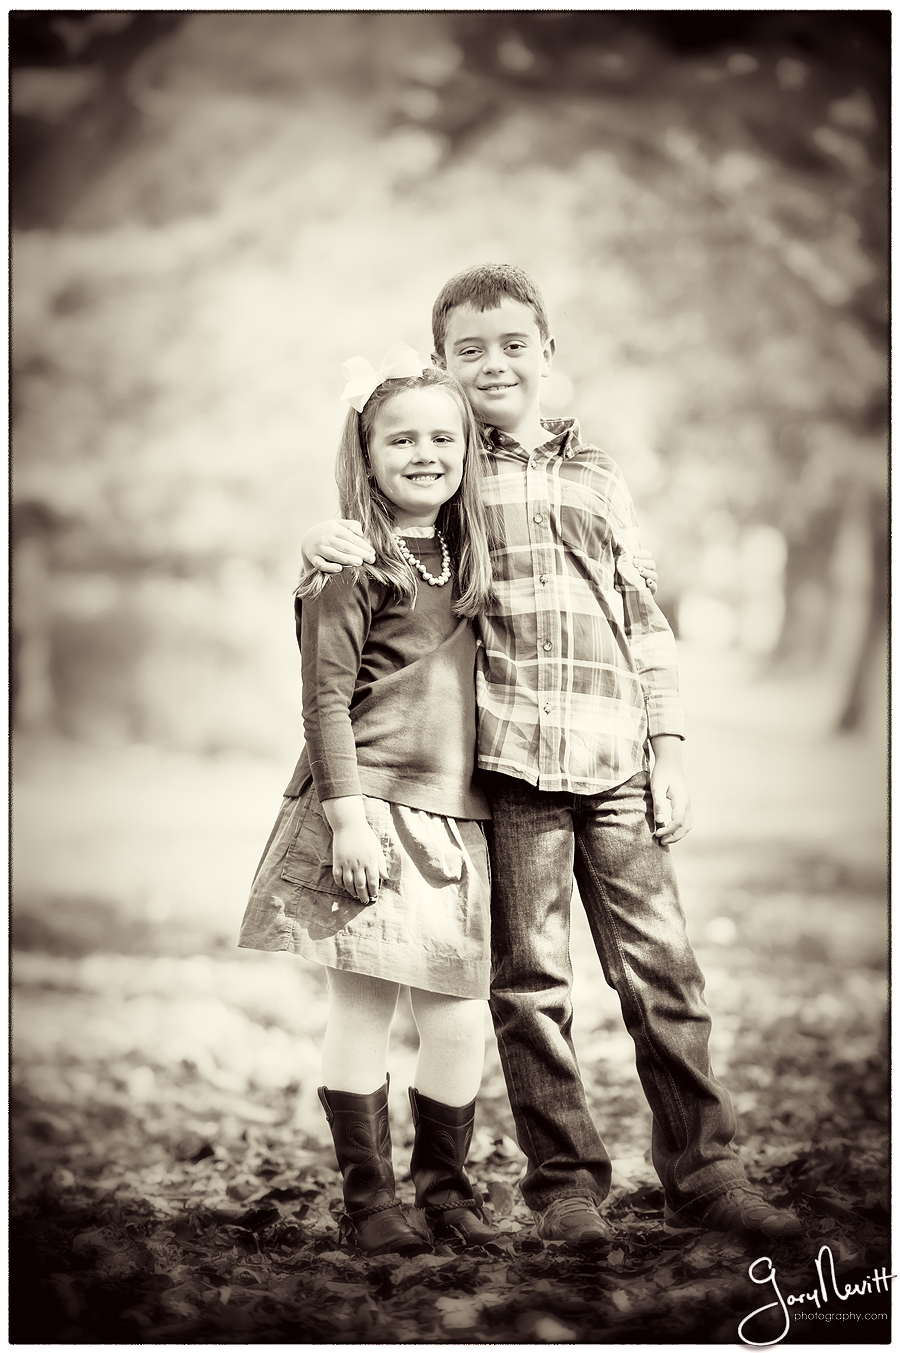 Philadelphia Family Portrait Photographer - Gary Nevitt Photography - Pearson - 1158